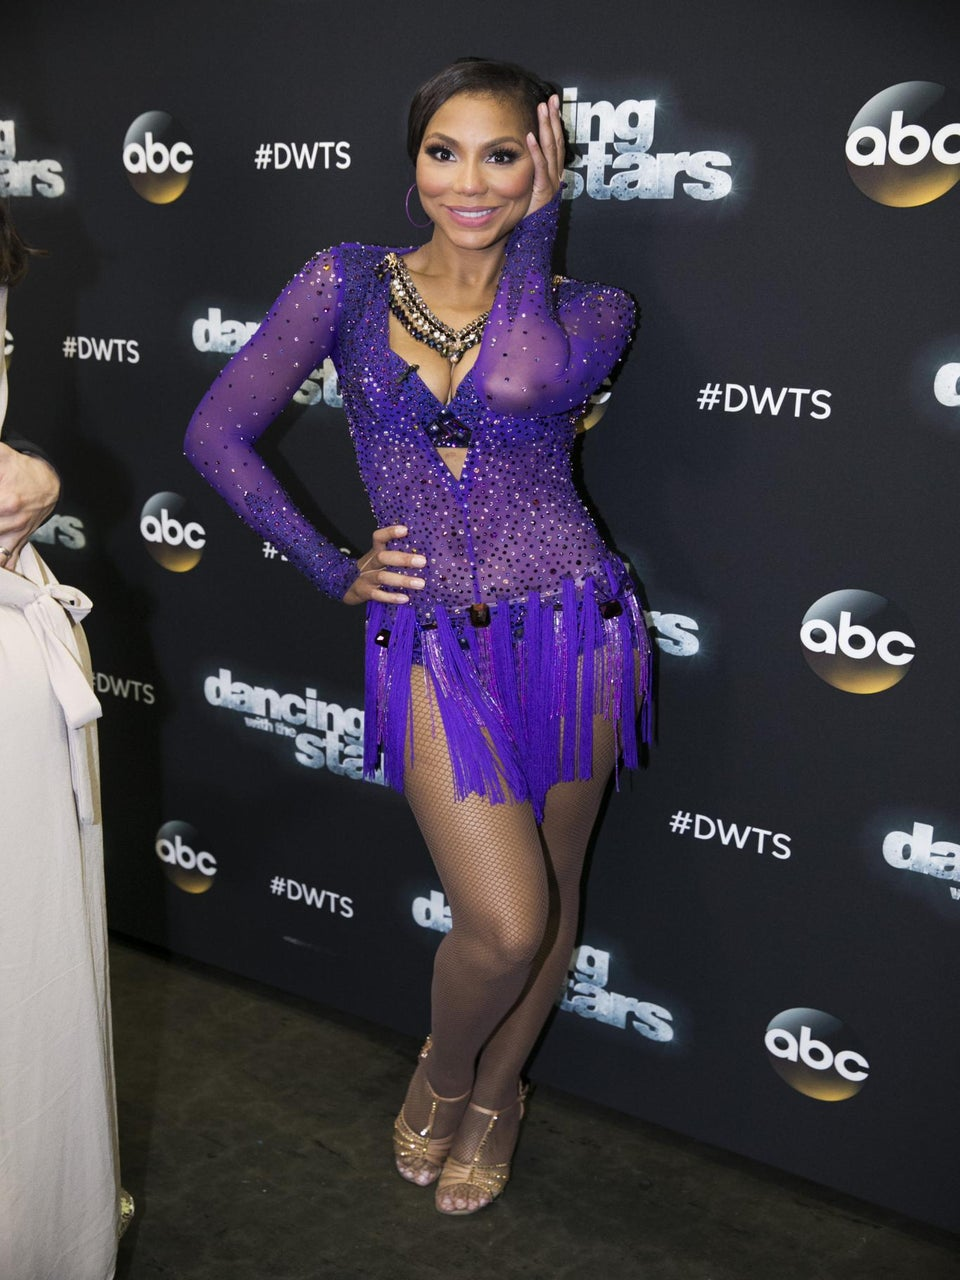 Tamar Braxton Returns to 'DWTS' Hours After Being Hospitalized for Pneumonia